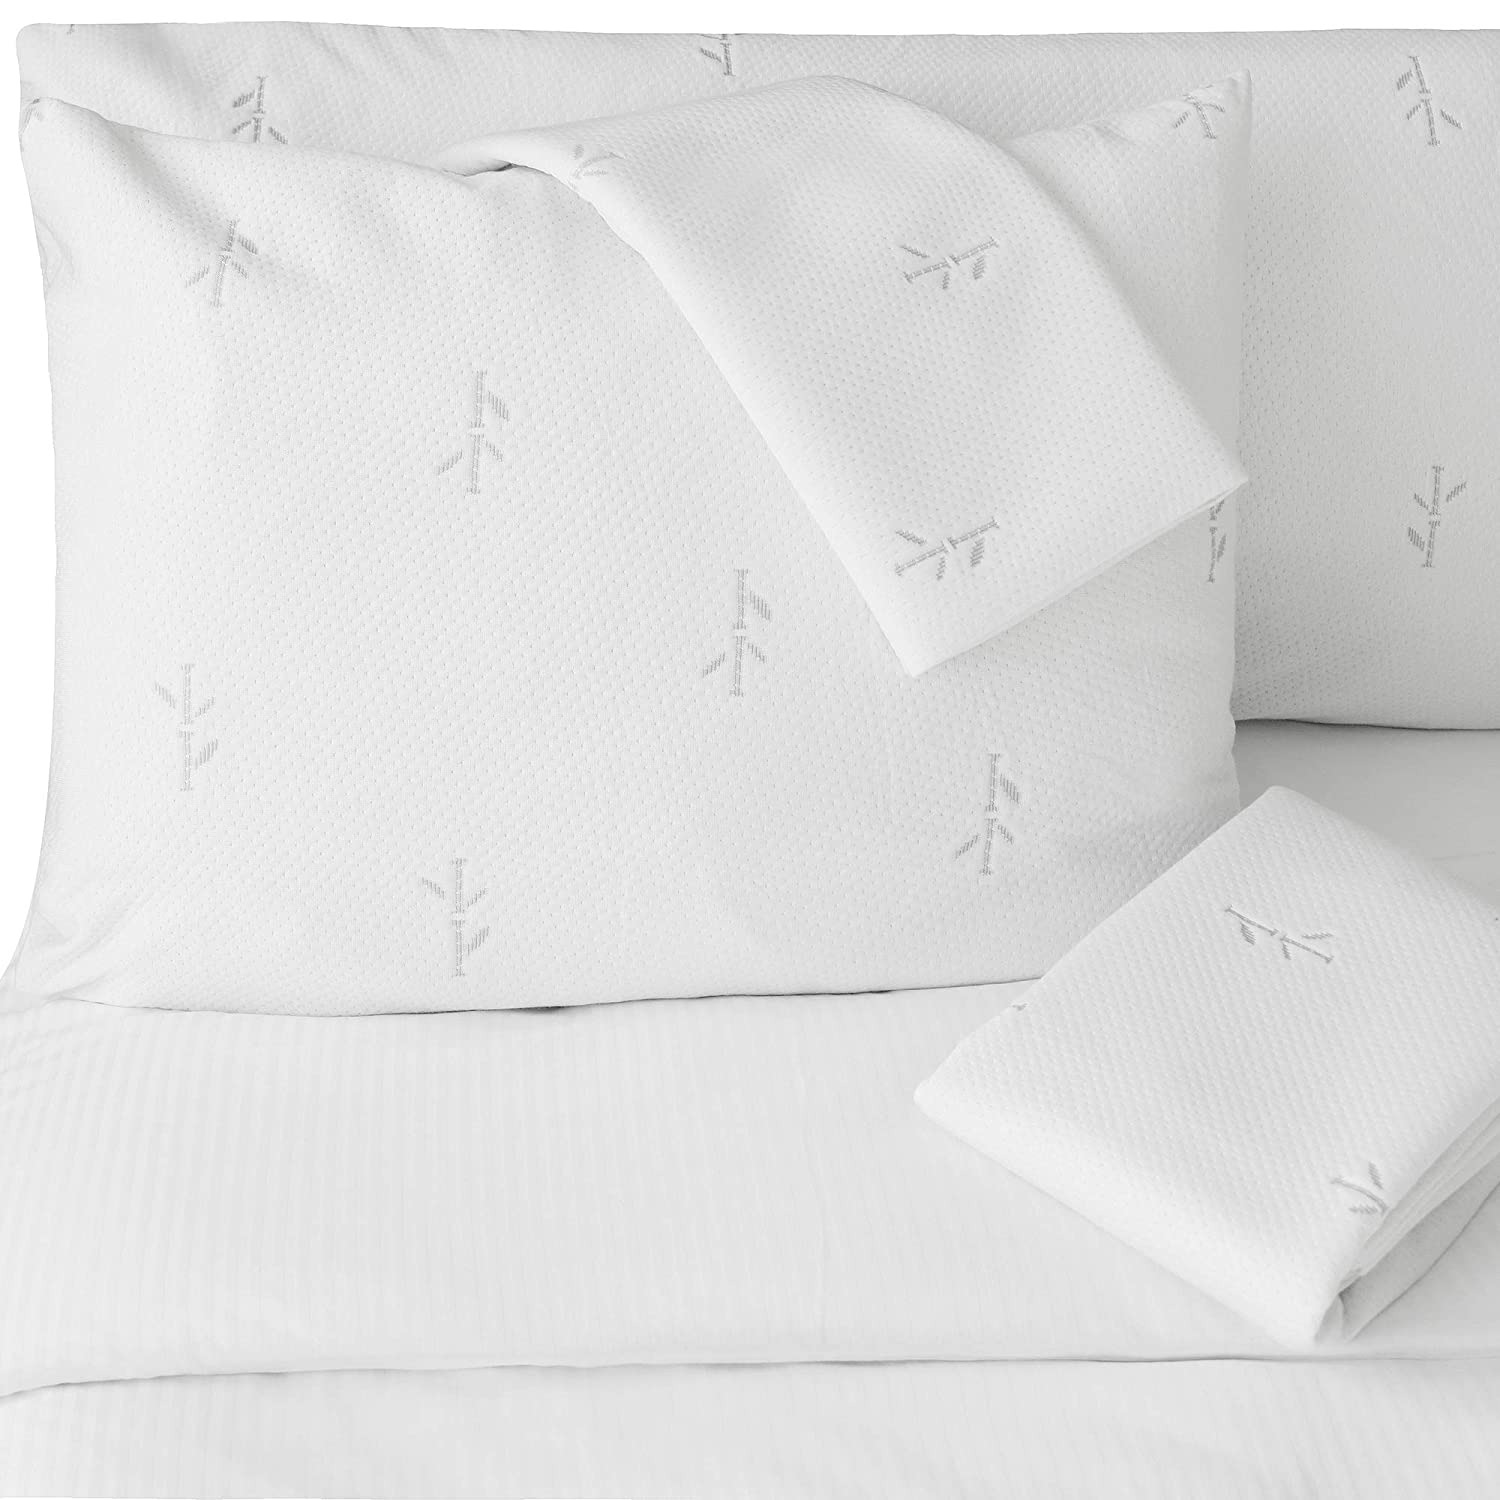 FeelAtHome Bamboo Pillow Protector Waterproof Hypoallergenic Pack of 2 (Queen) - Anti-Bedbug, Anti-Allergen Zippered Bamboo Pillow Case Cover Encasement - Cooling, Ultra Soft Bamboo Fibre